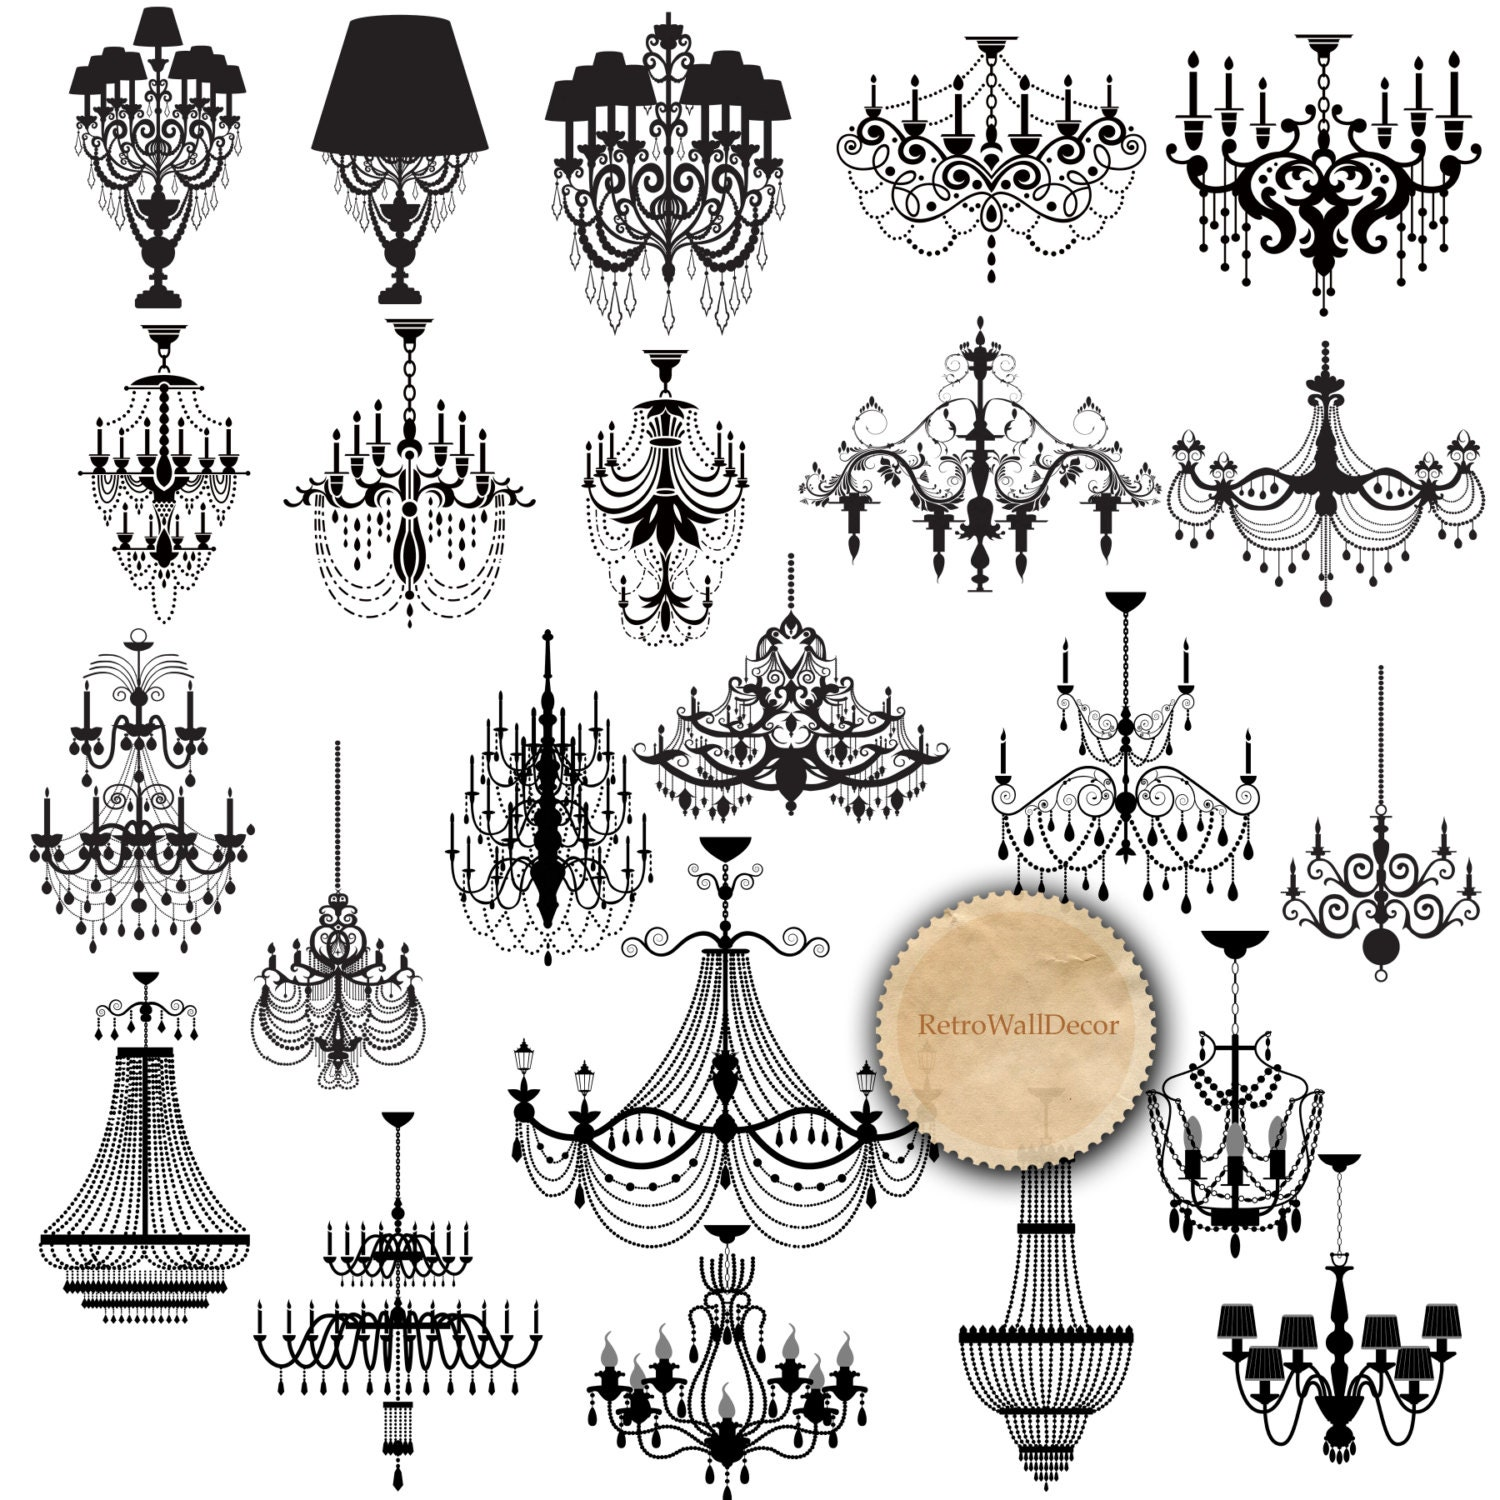 Chandelier Silhouette Clip Art Black Chandelier Wedding